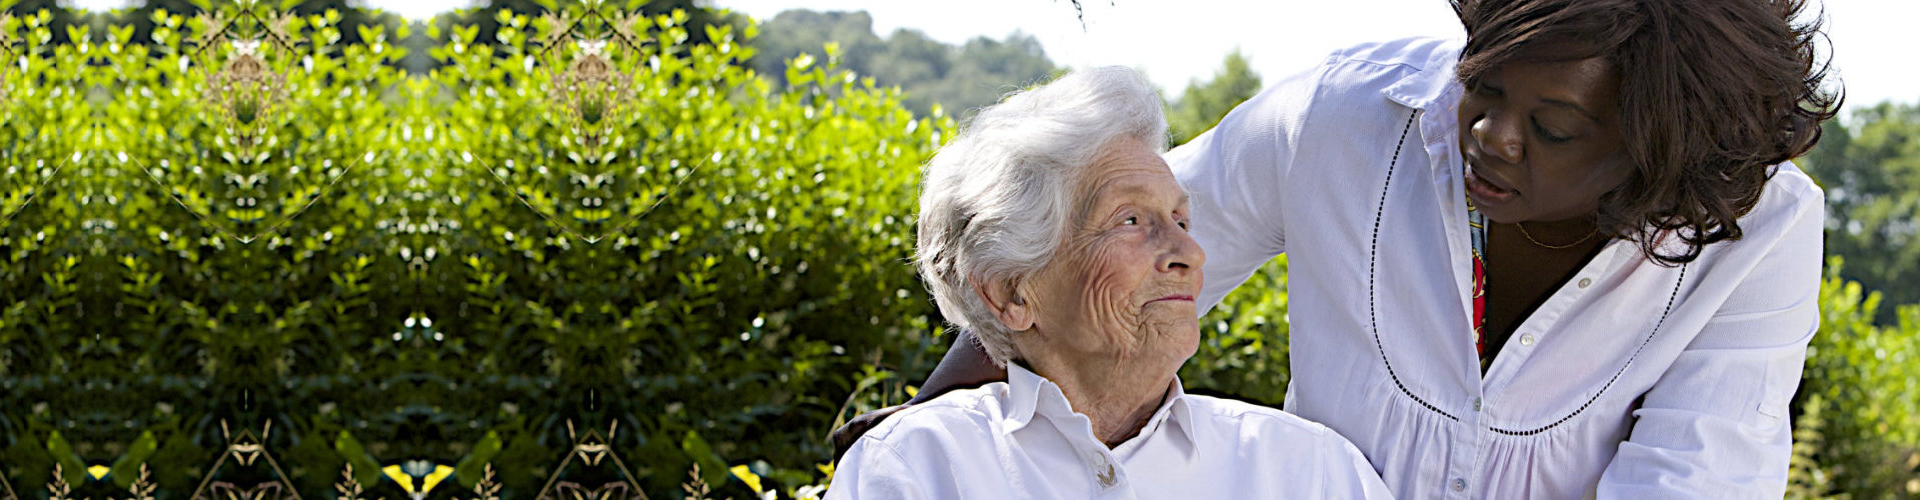 caregiver and an elderly woman chatting